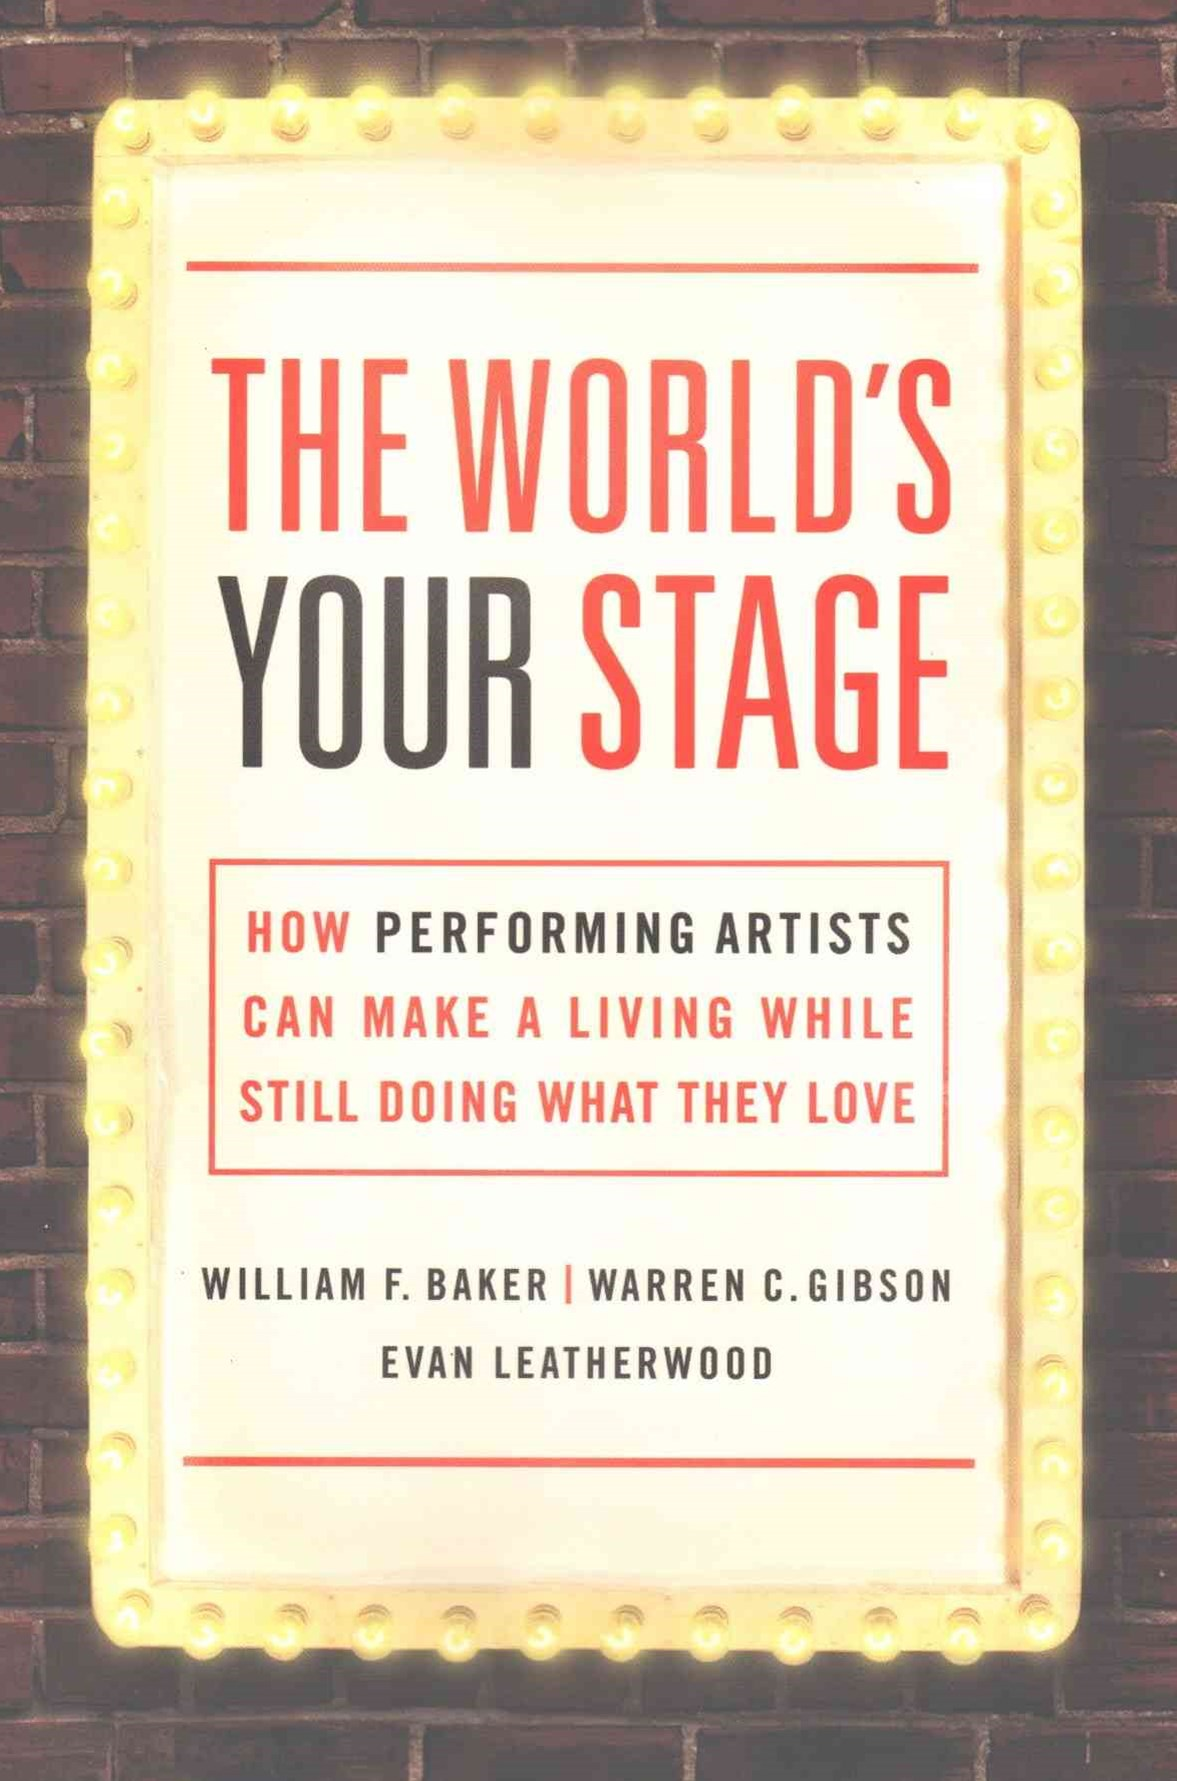 World's Your Stage: How Performing Artists Can Make a Living While Still Doing What They Love